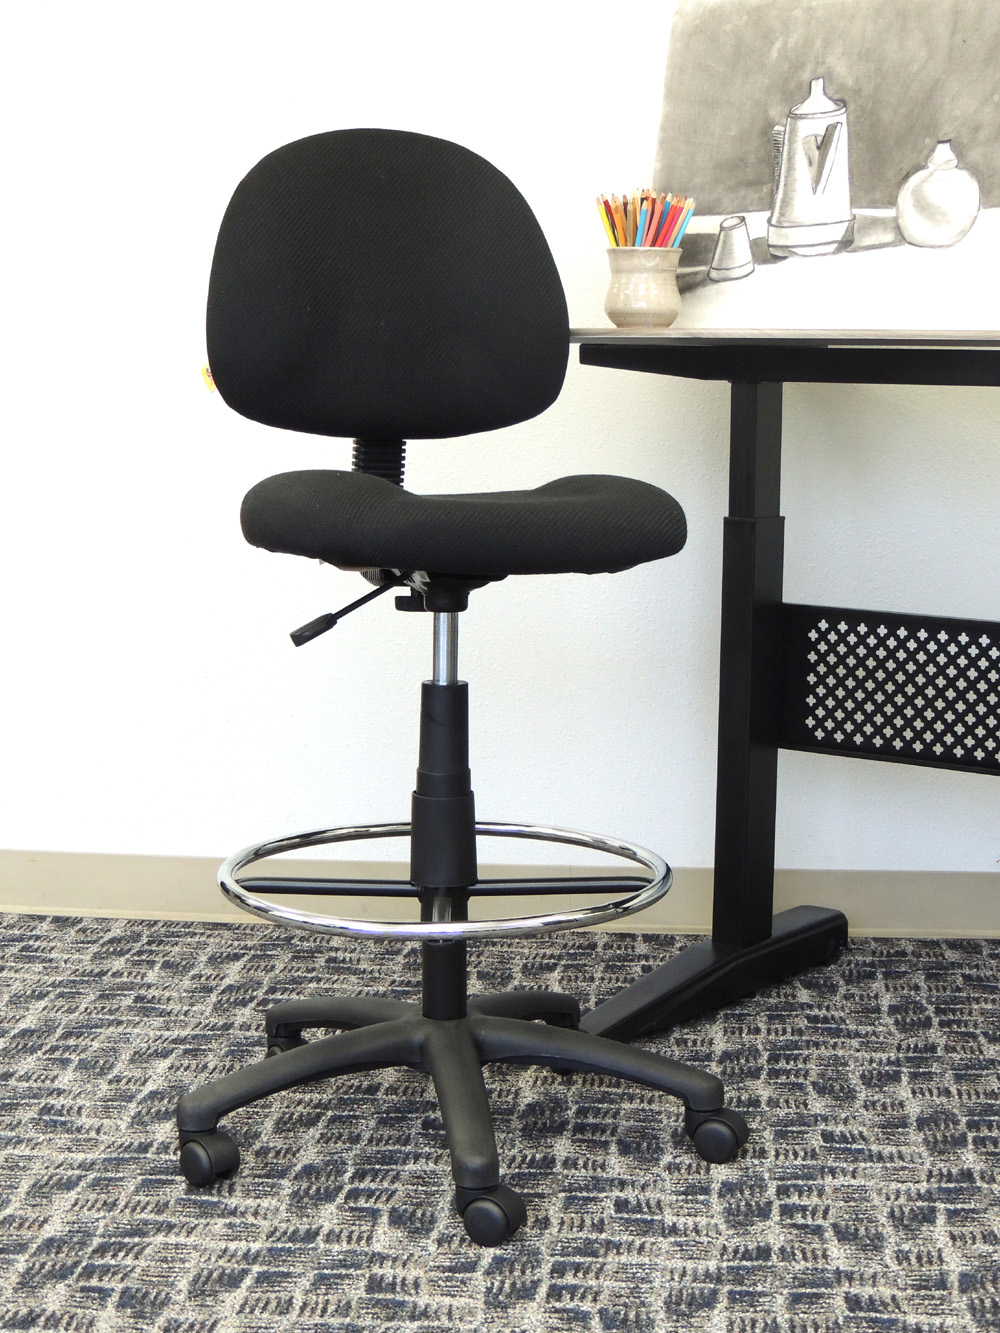 Boss Office Products Black Contoured Comfort Adjustable Rolling Drafting Stool Chair  sc 1 st  Walmart & Boss Office Products Black Contoured Comfort Adjustable Rolling ... islam-shia.org